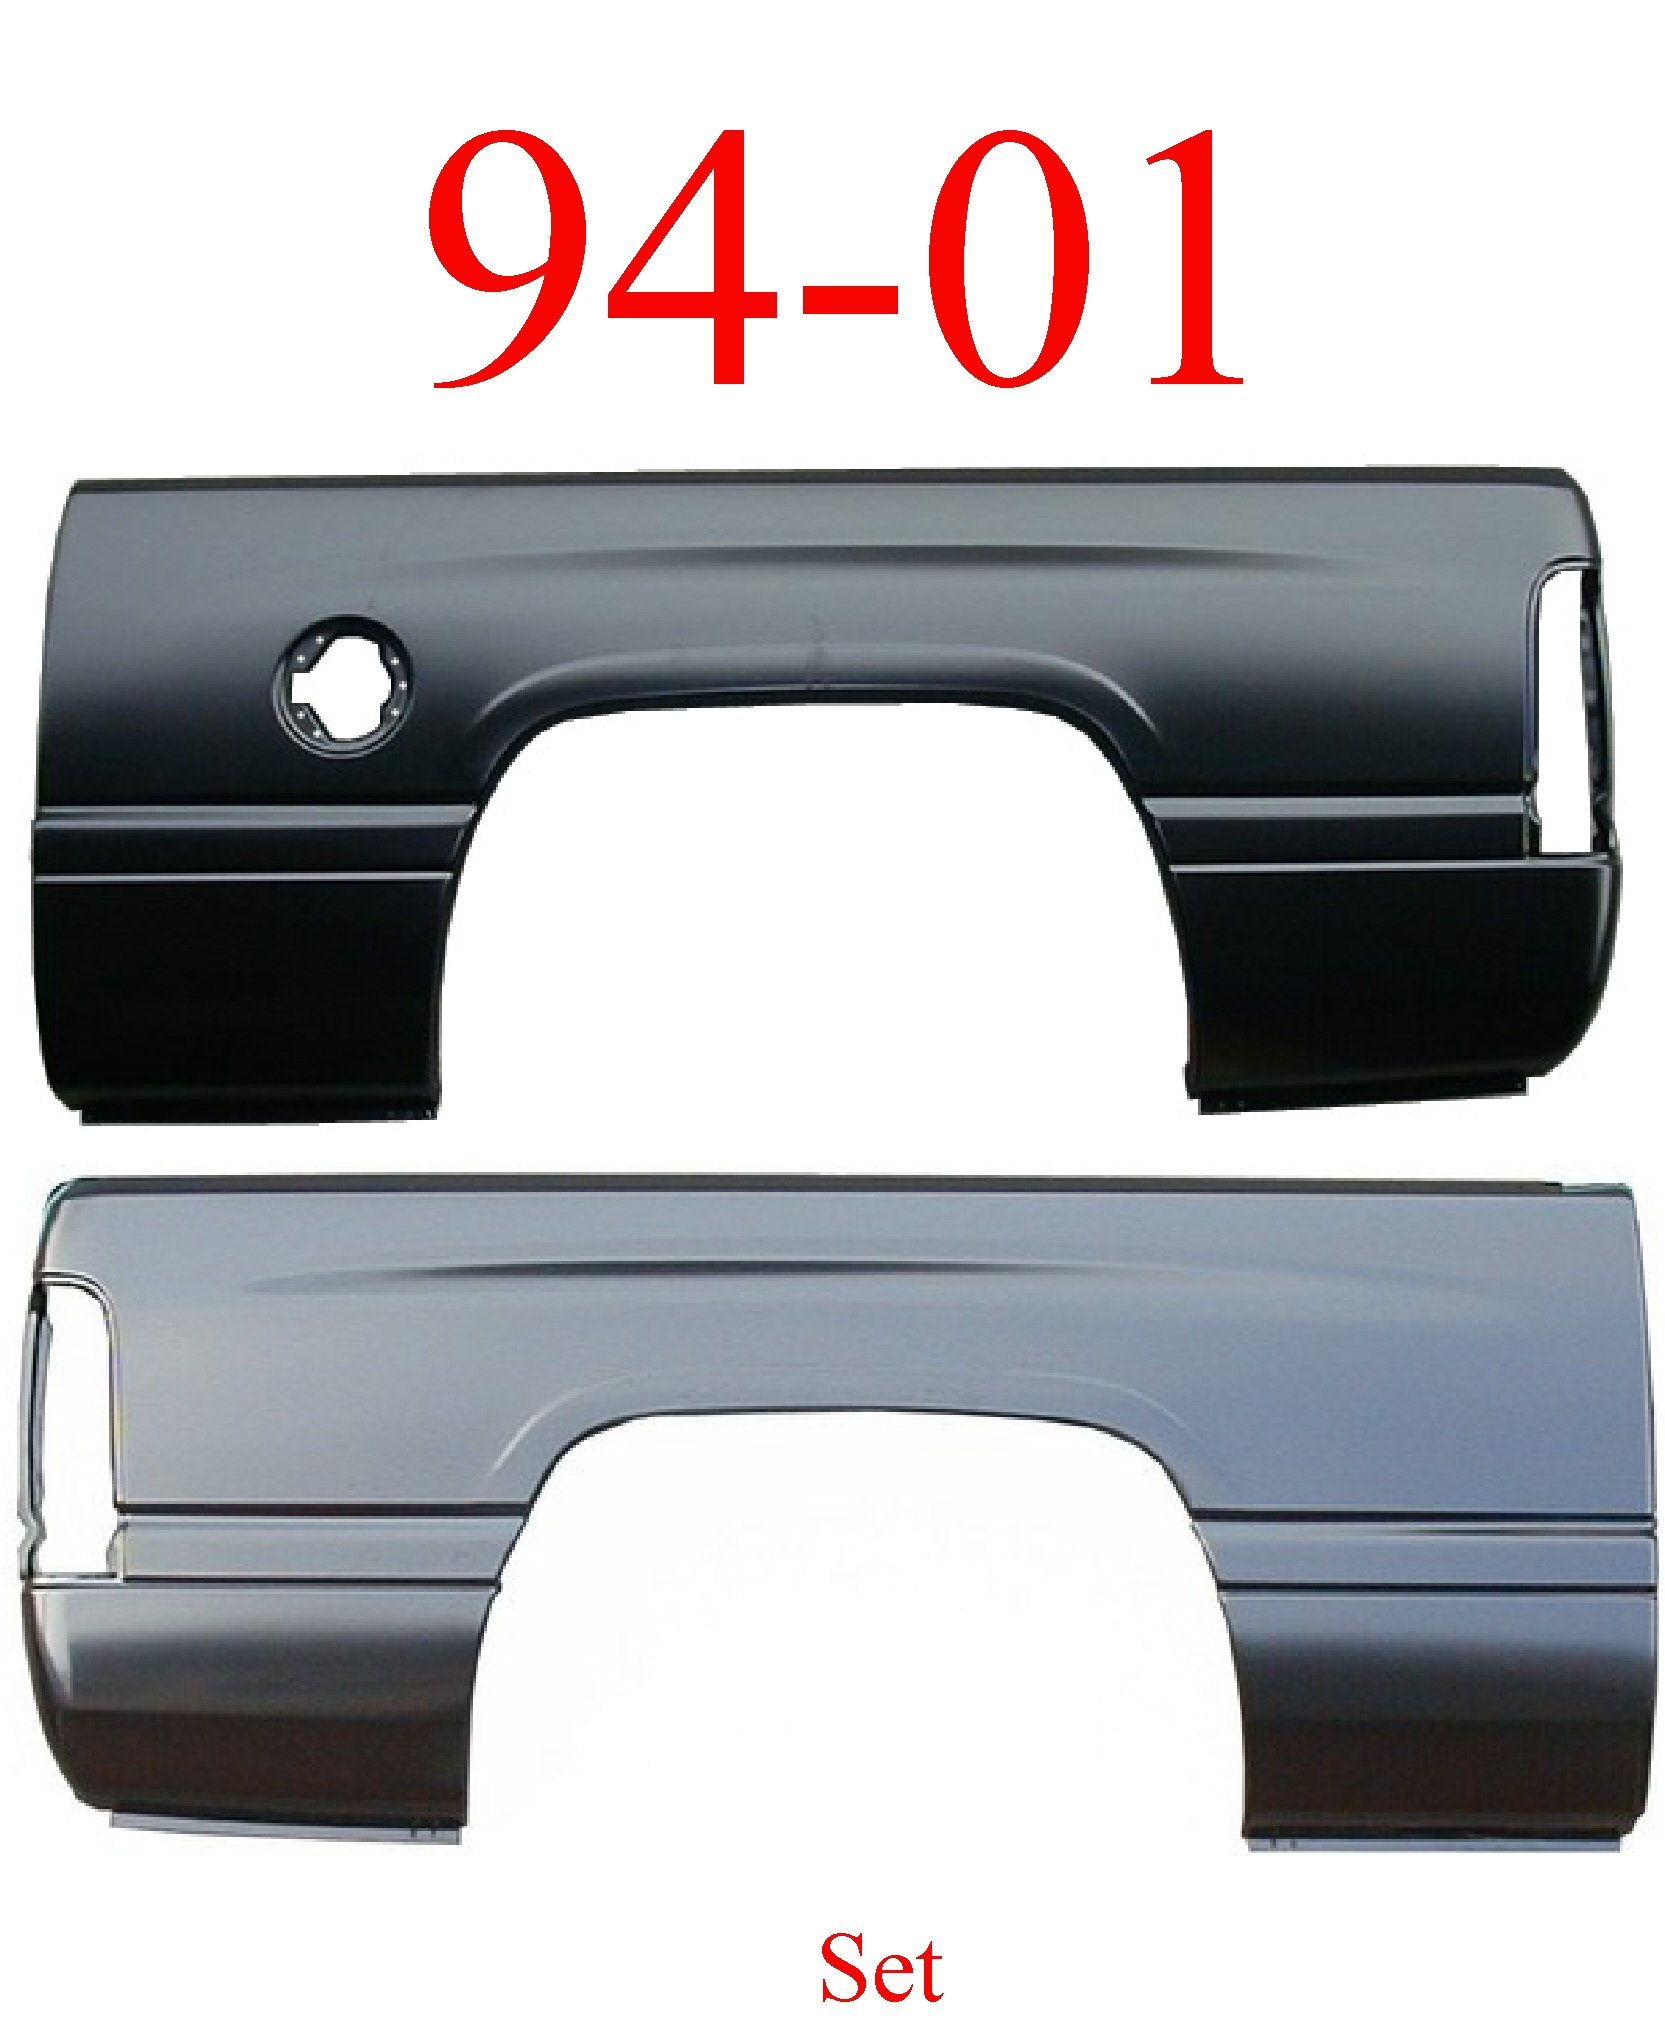 94-01 Dodge Ram 6' Short Bed Side Set, Both Sides